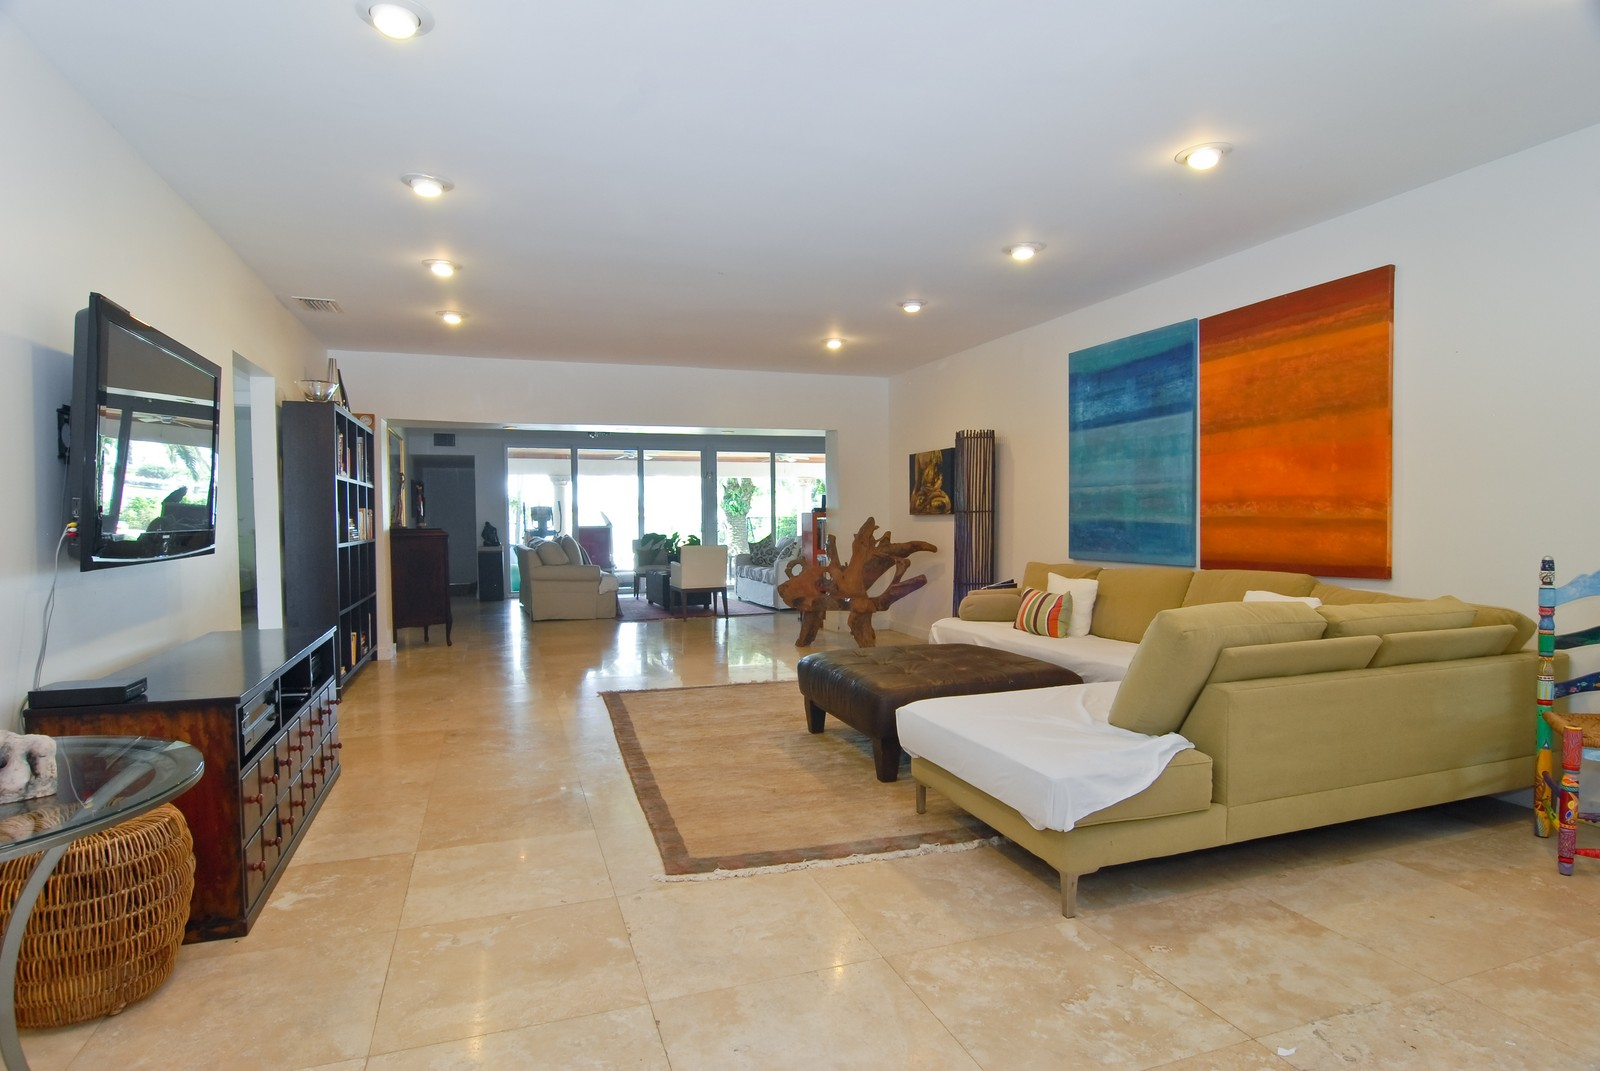 Real Estate Photography - 1320 Still Water Dr, Miami, FL, 33141 - Living Rm/Family Rm